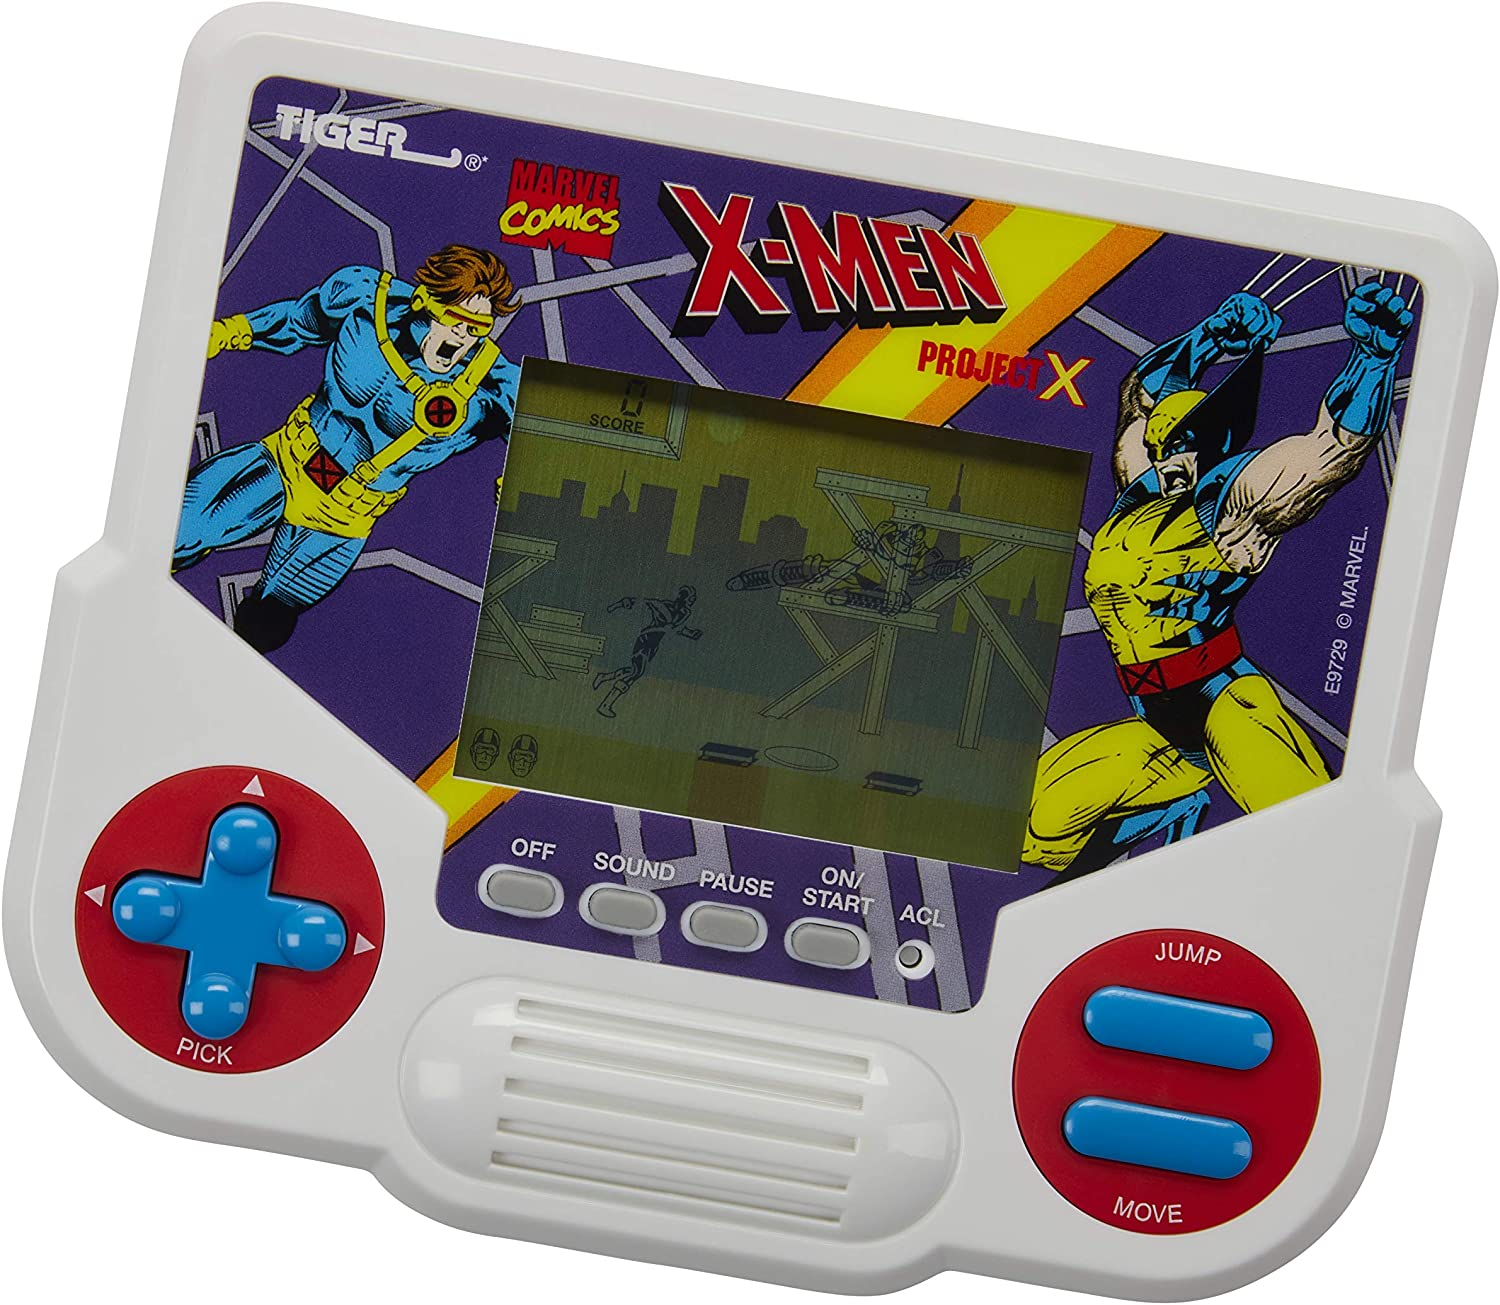 Tiger Electronics Marvel X-Men Project X Electronic LCD Video Game, Retro-Inspired 1-Player Handheld Game, Ages 8 and Up: Toys & Games